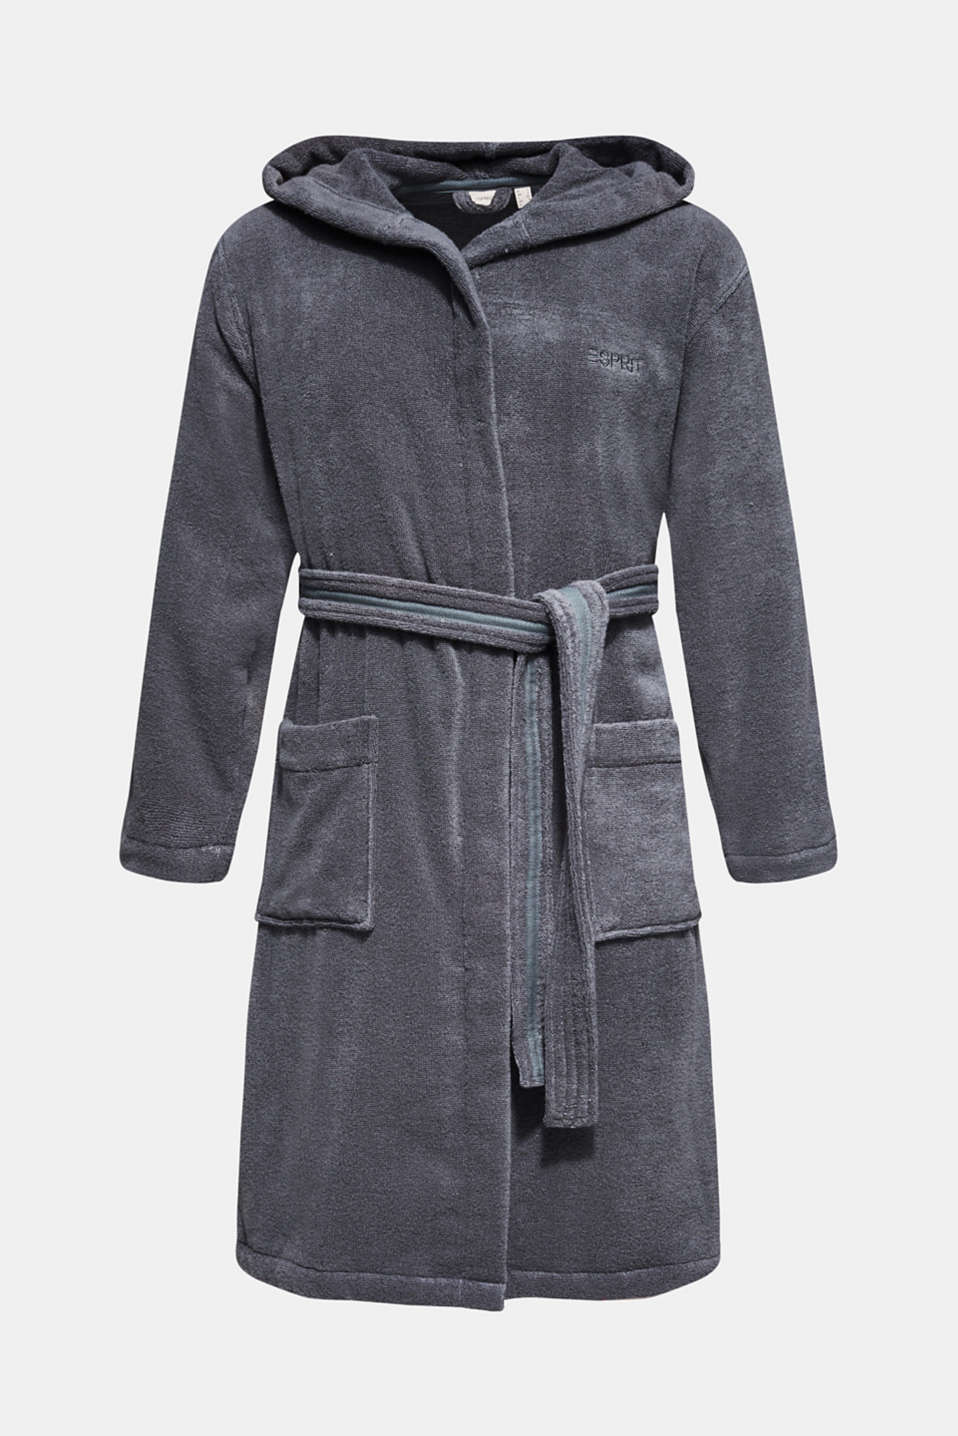 Unisex bathrobe made of 100% cotton, GREY STEEL, detail image number 4